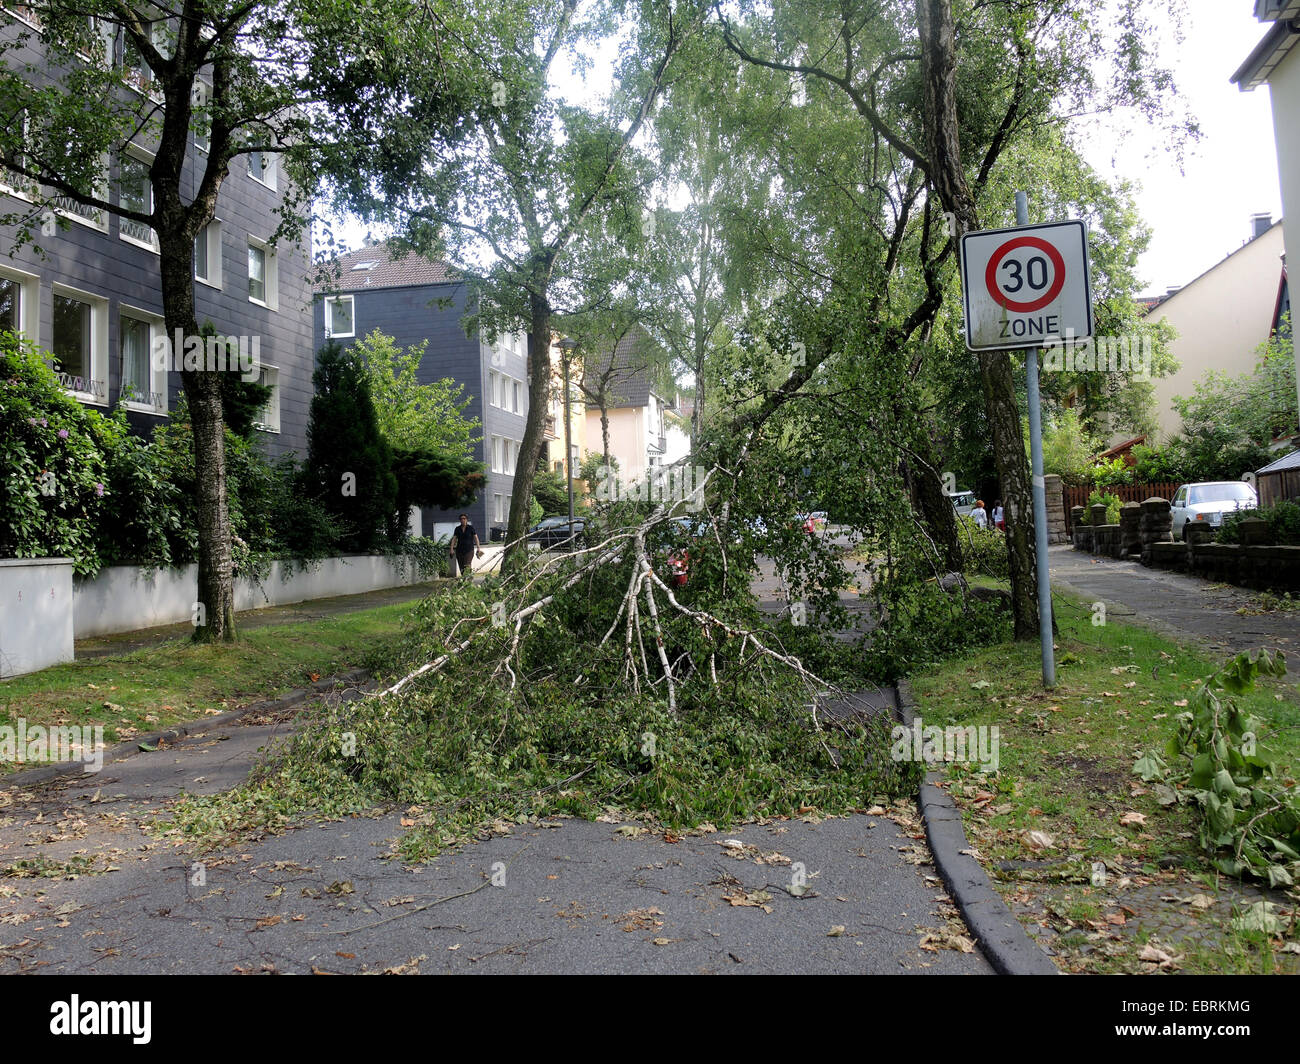 common birch, silver birch, European white birch, white birch (Betula pendula, Betula alba), fallen birch blocking - Stock Image